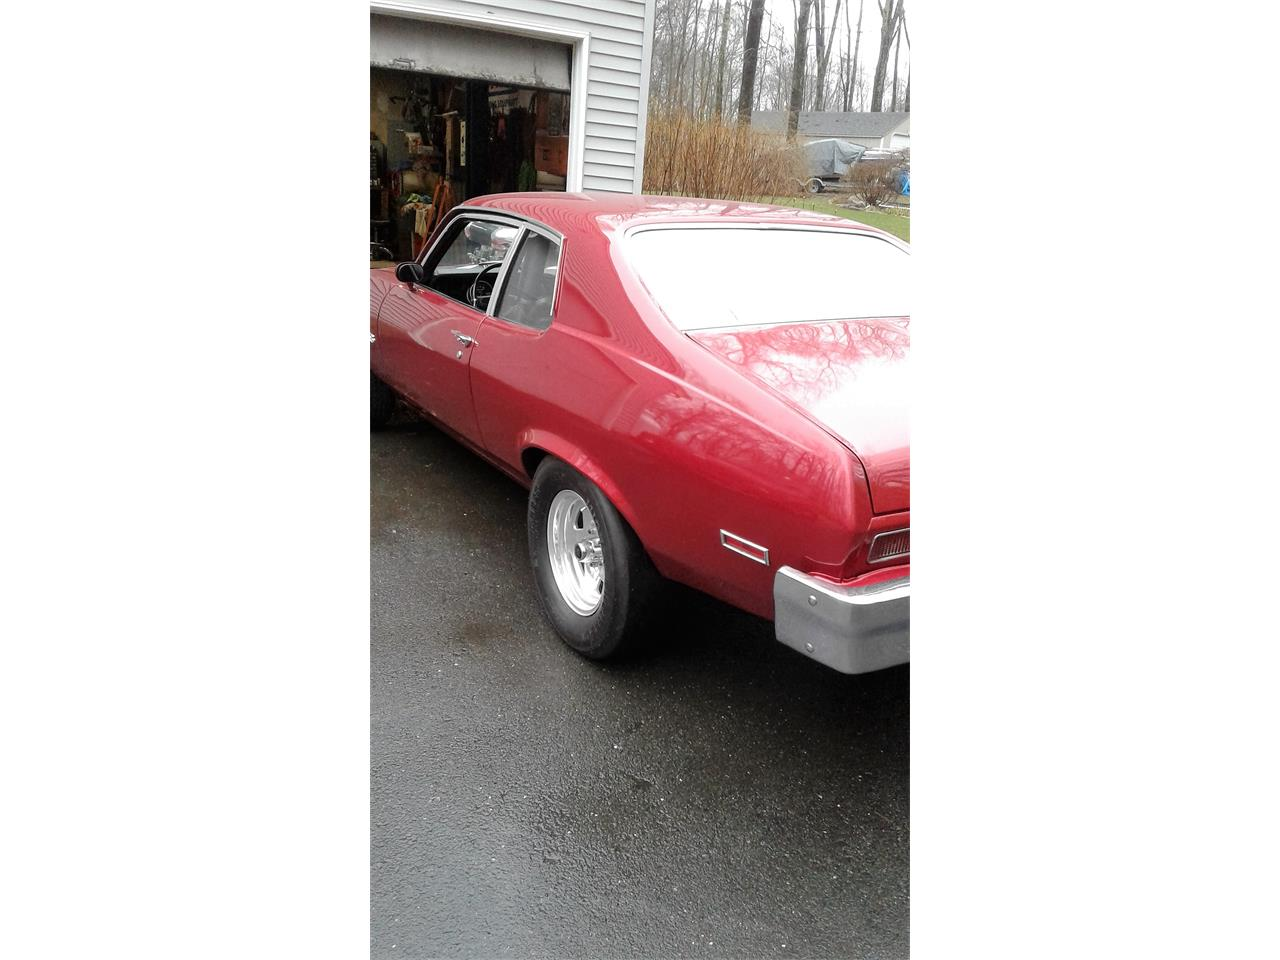 1973 Chevrolet Nova (CC-1353364) for sale in COVENTRY, Connecticut